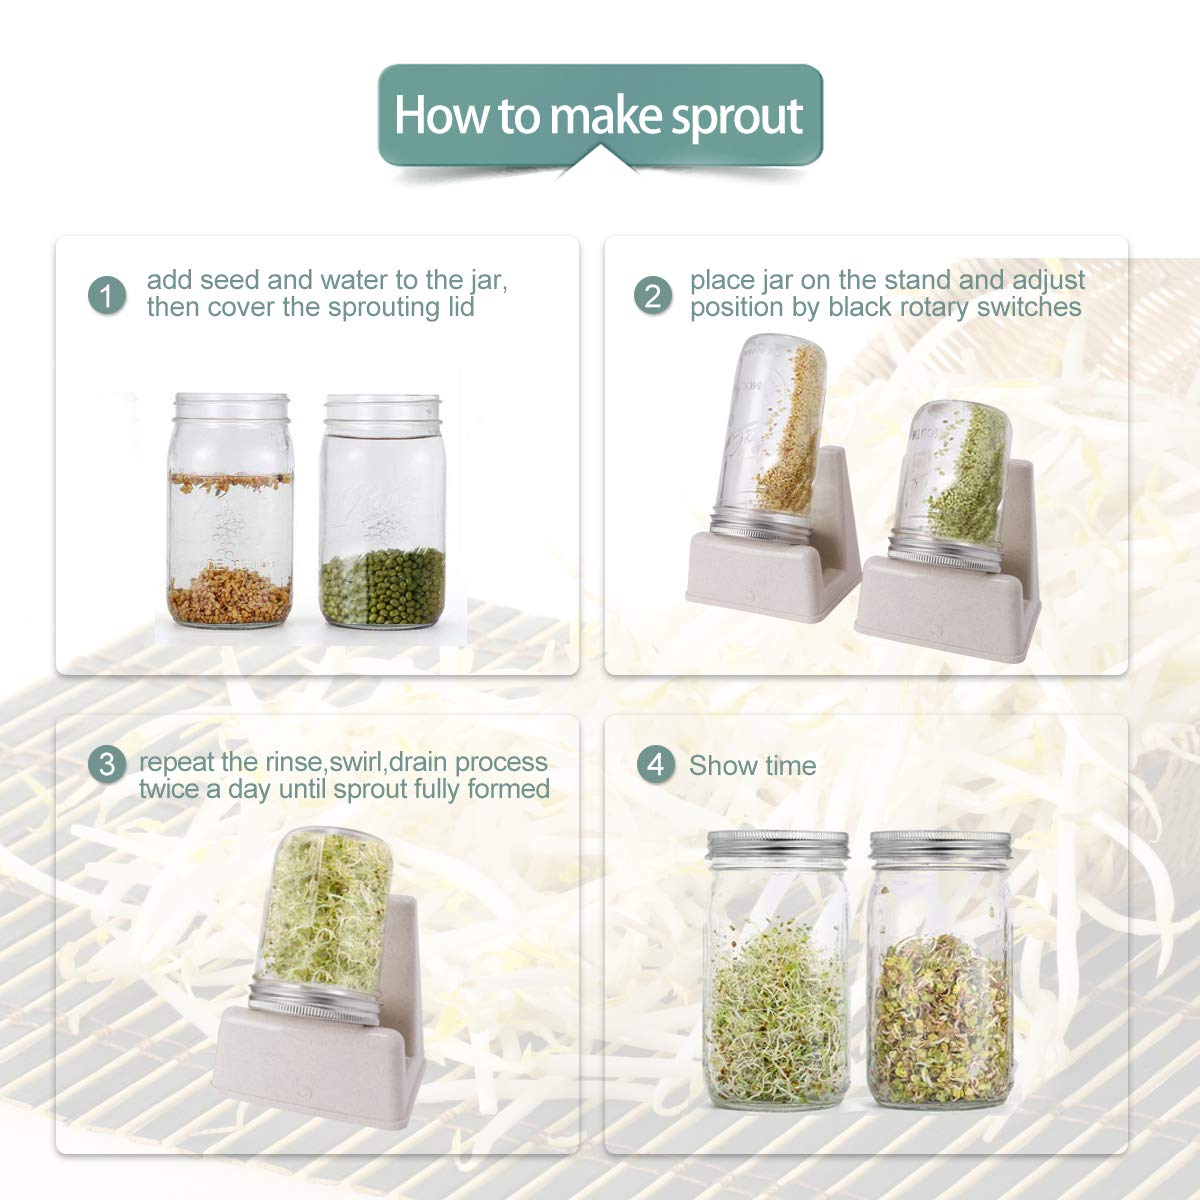 Sprouting Lids,2 Pack Sprouting Stand and 4 Pack Stainless Steel Screen Sprouting Jar Lids Mason Jar Sprouting Lids for Wide Mouth Mason Jars Growing Sprouts Organic Sprout Seeds